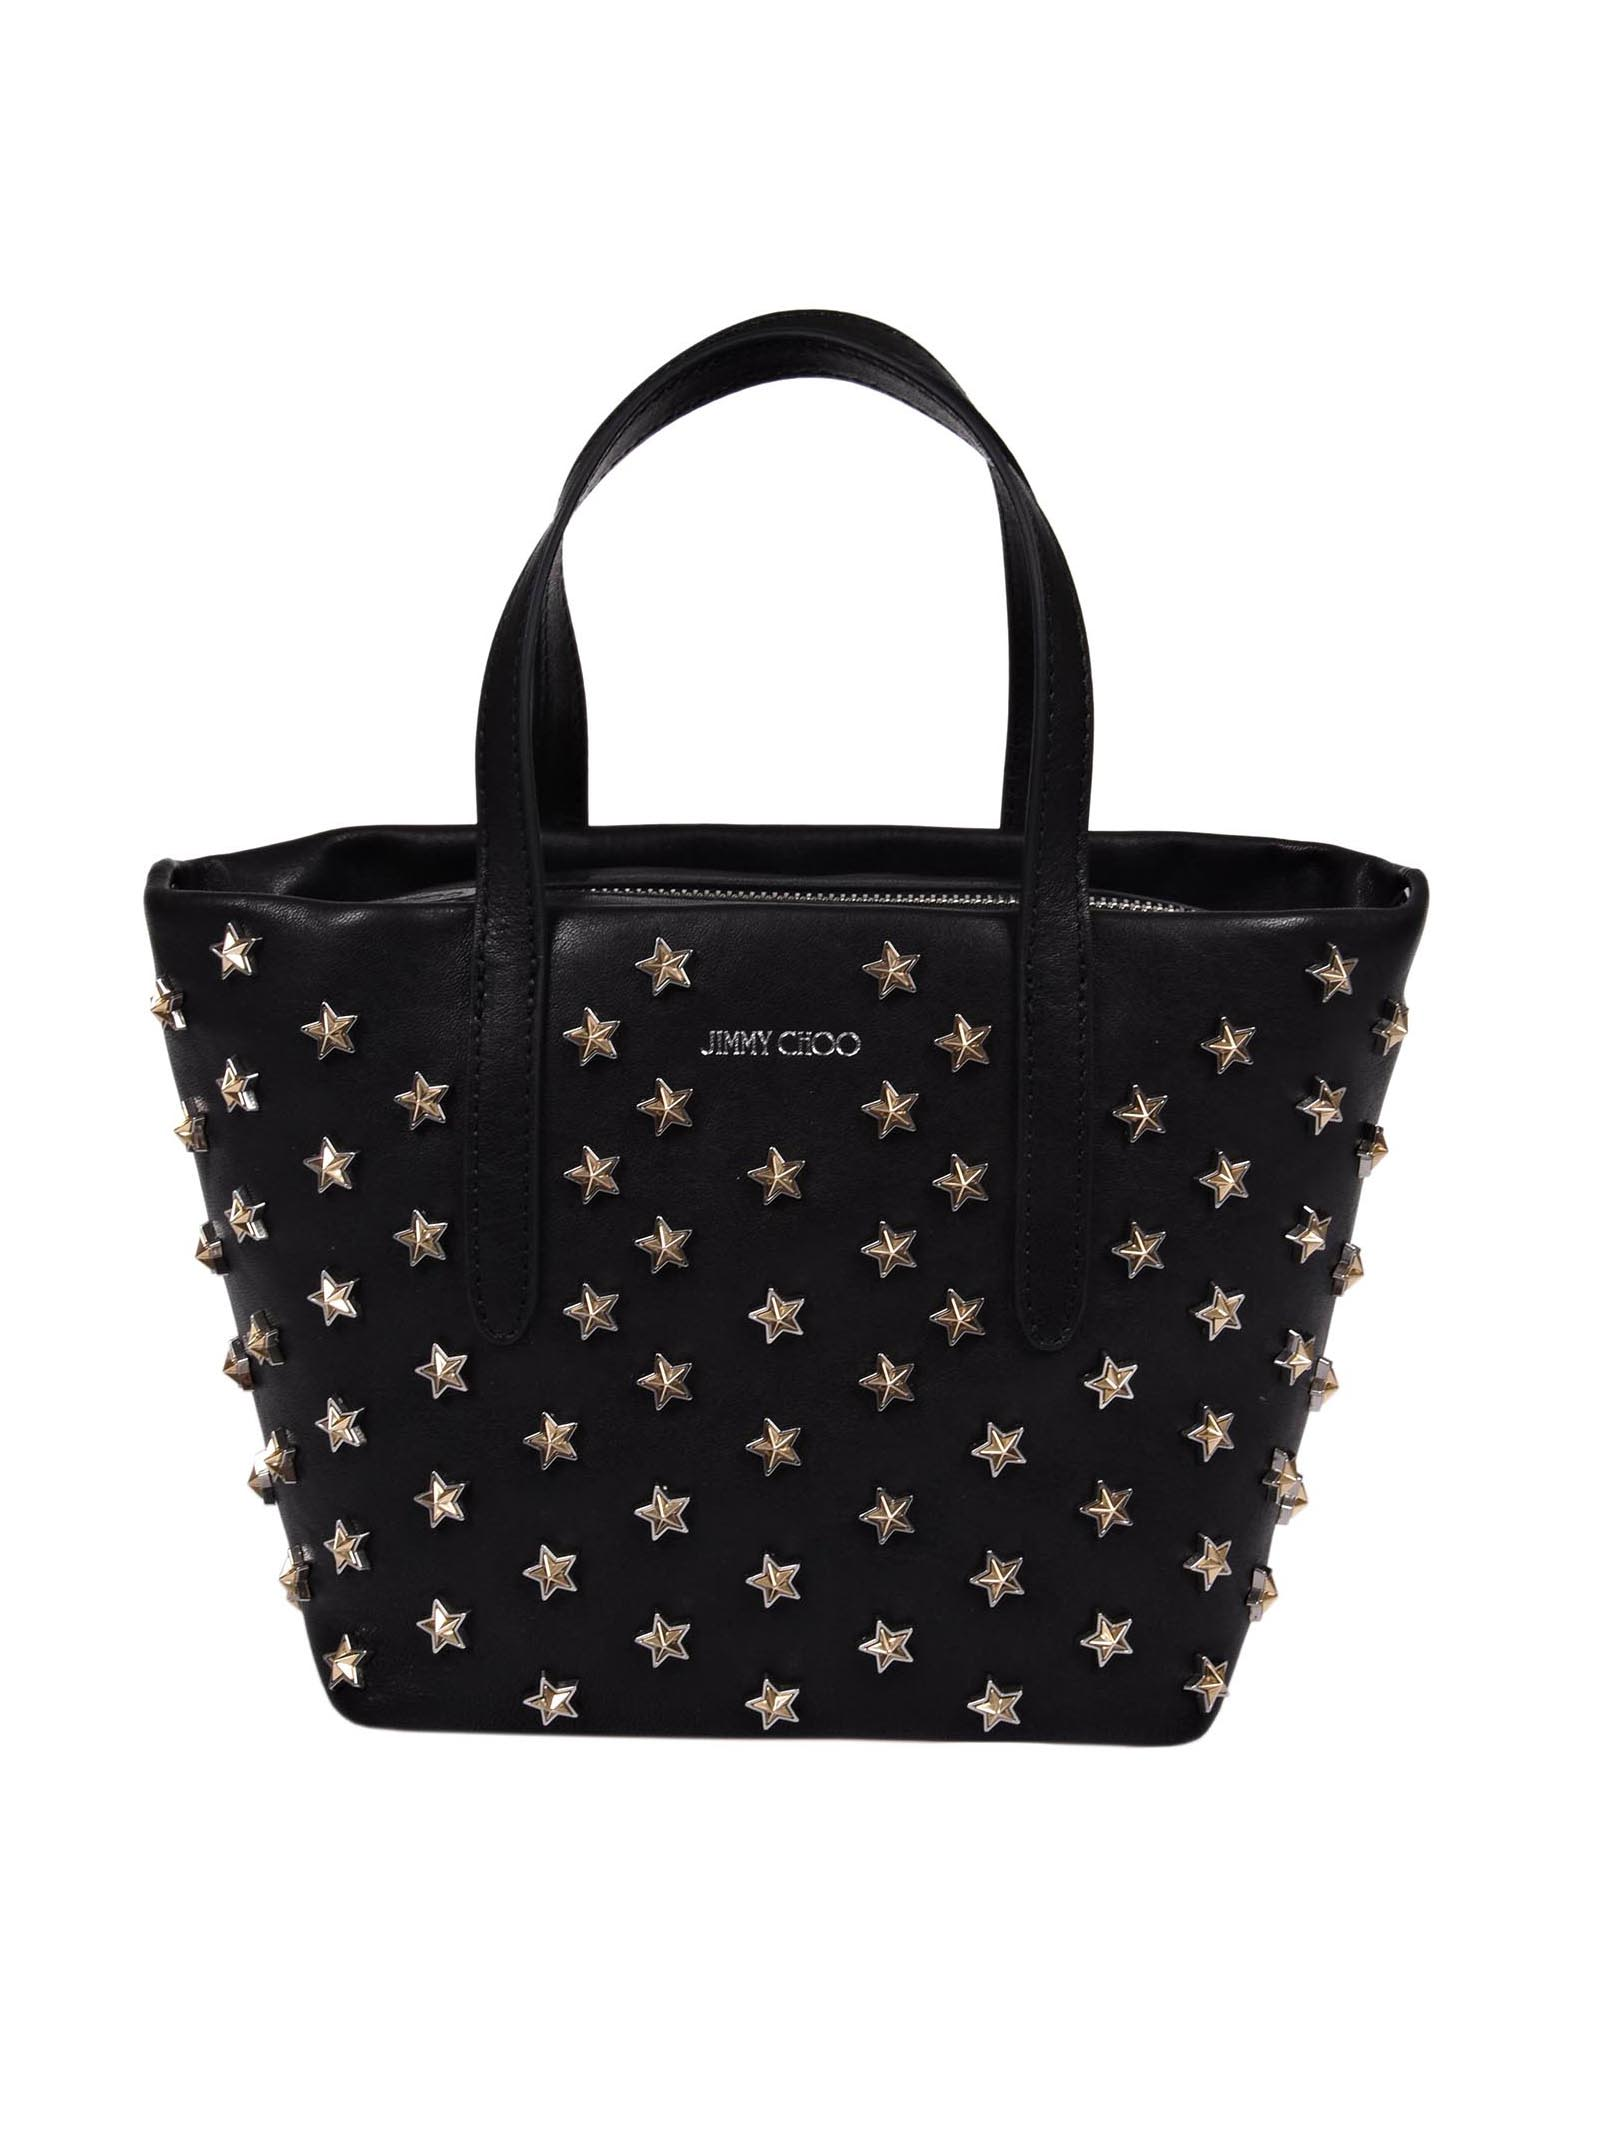 Jimmy Choo Shopping Bag